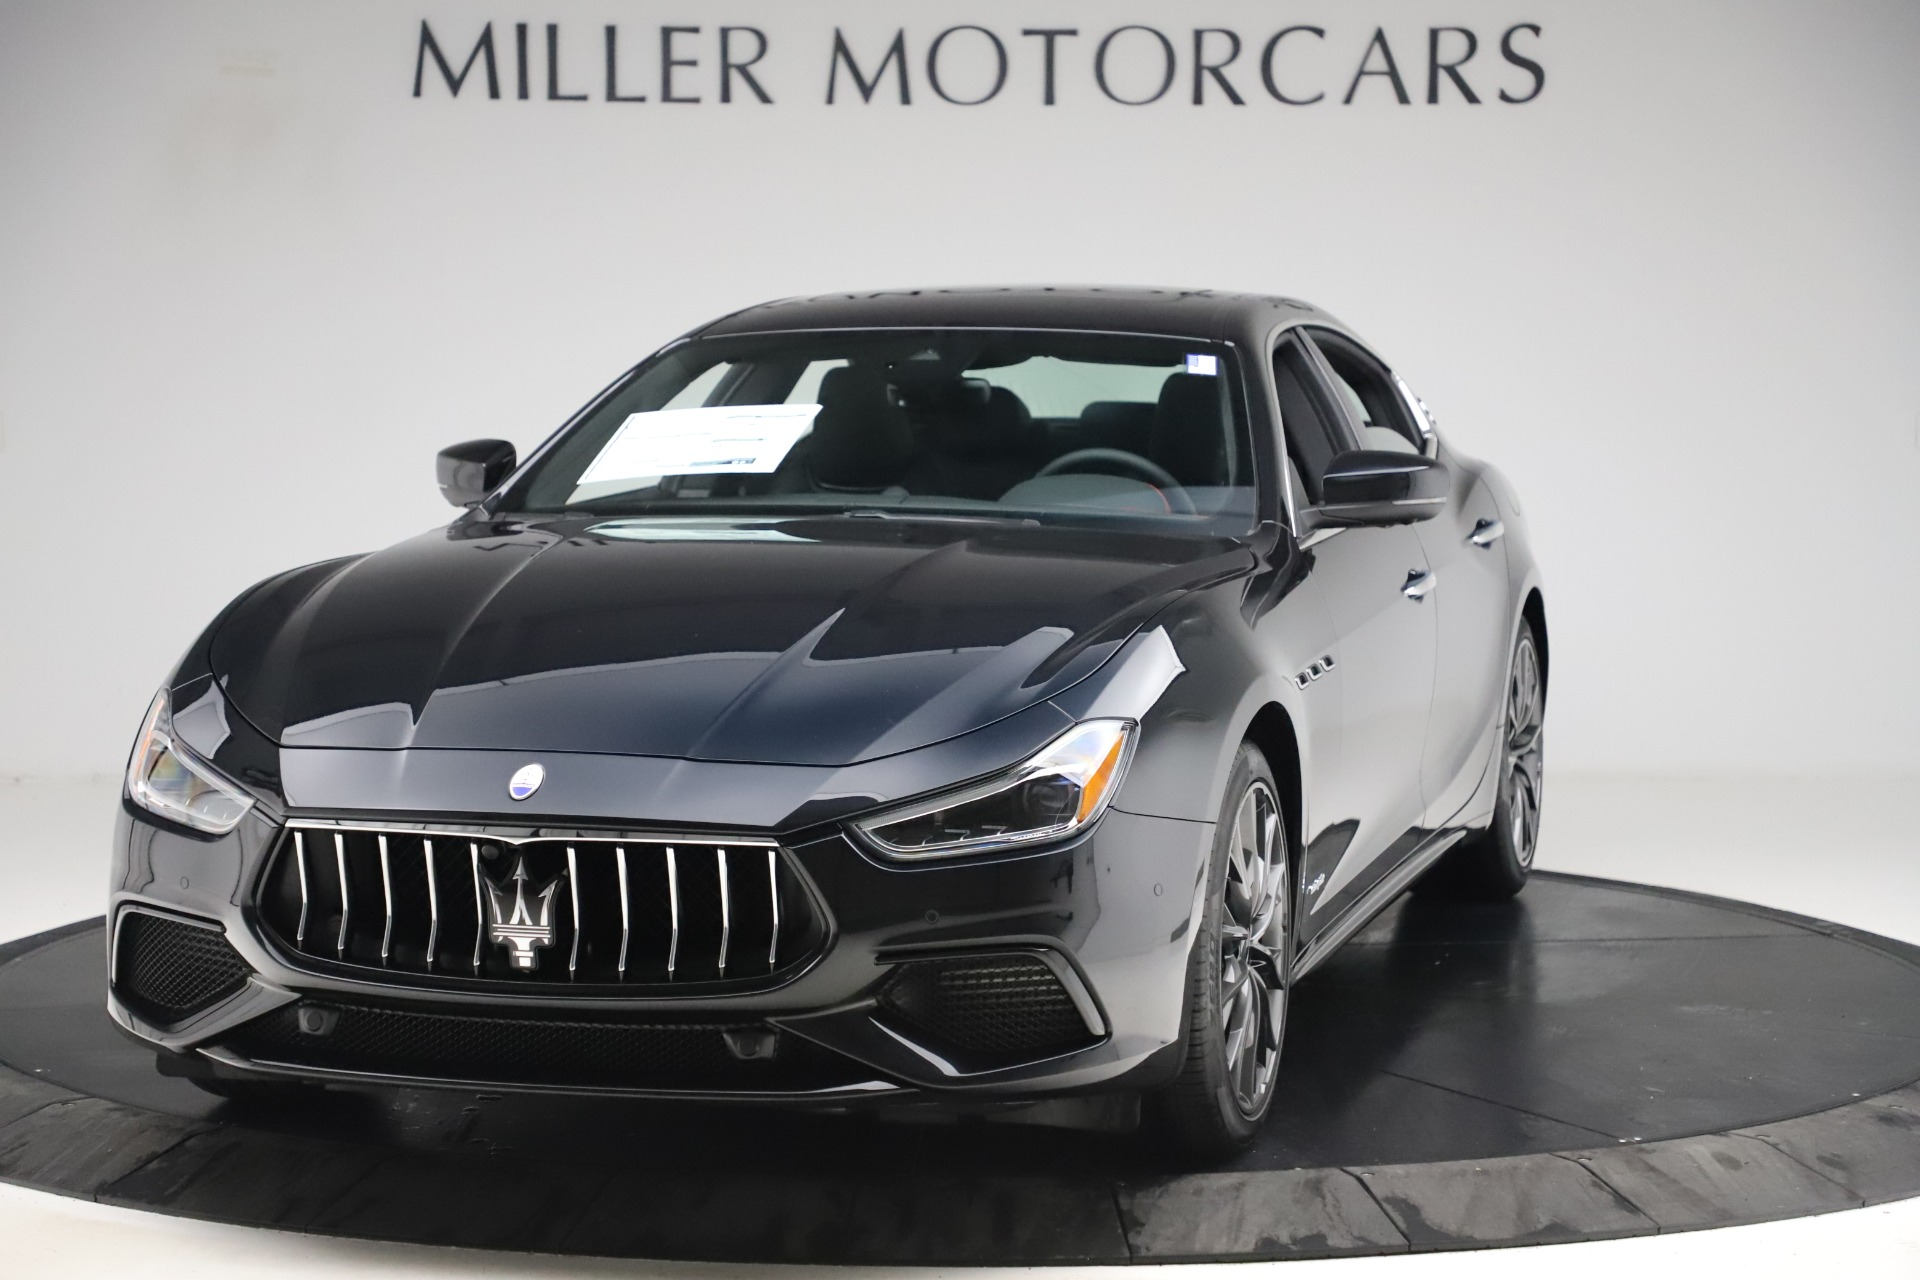 New 2019 Maserati Ghibli S Q4 GranSport for sale Sold at Bugatti of Greenwich in Greenwich CT 06830 1